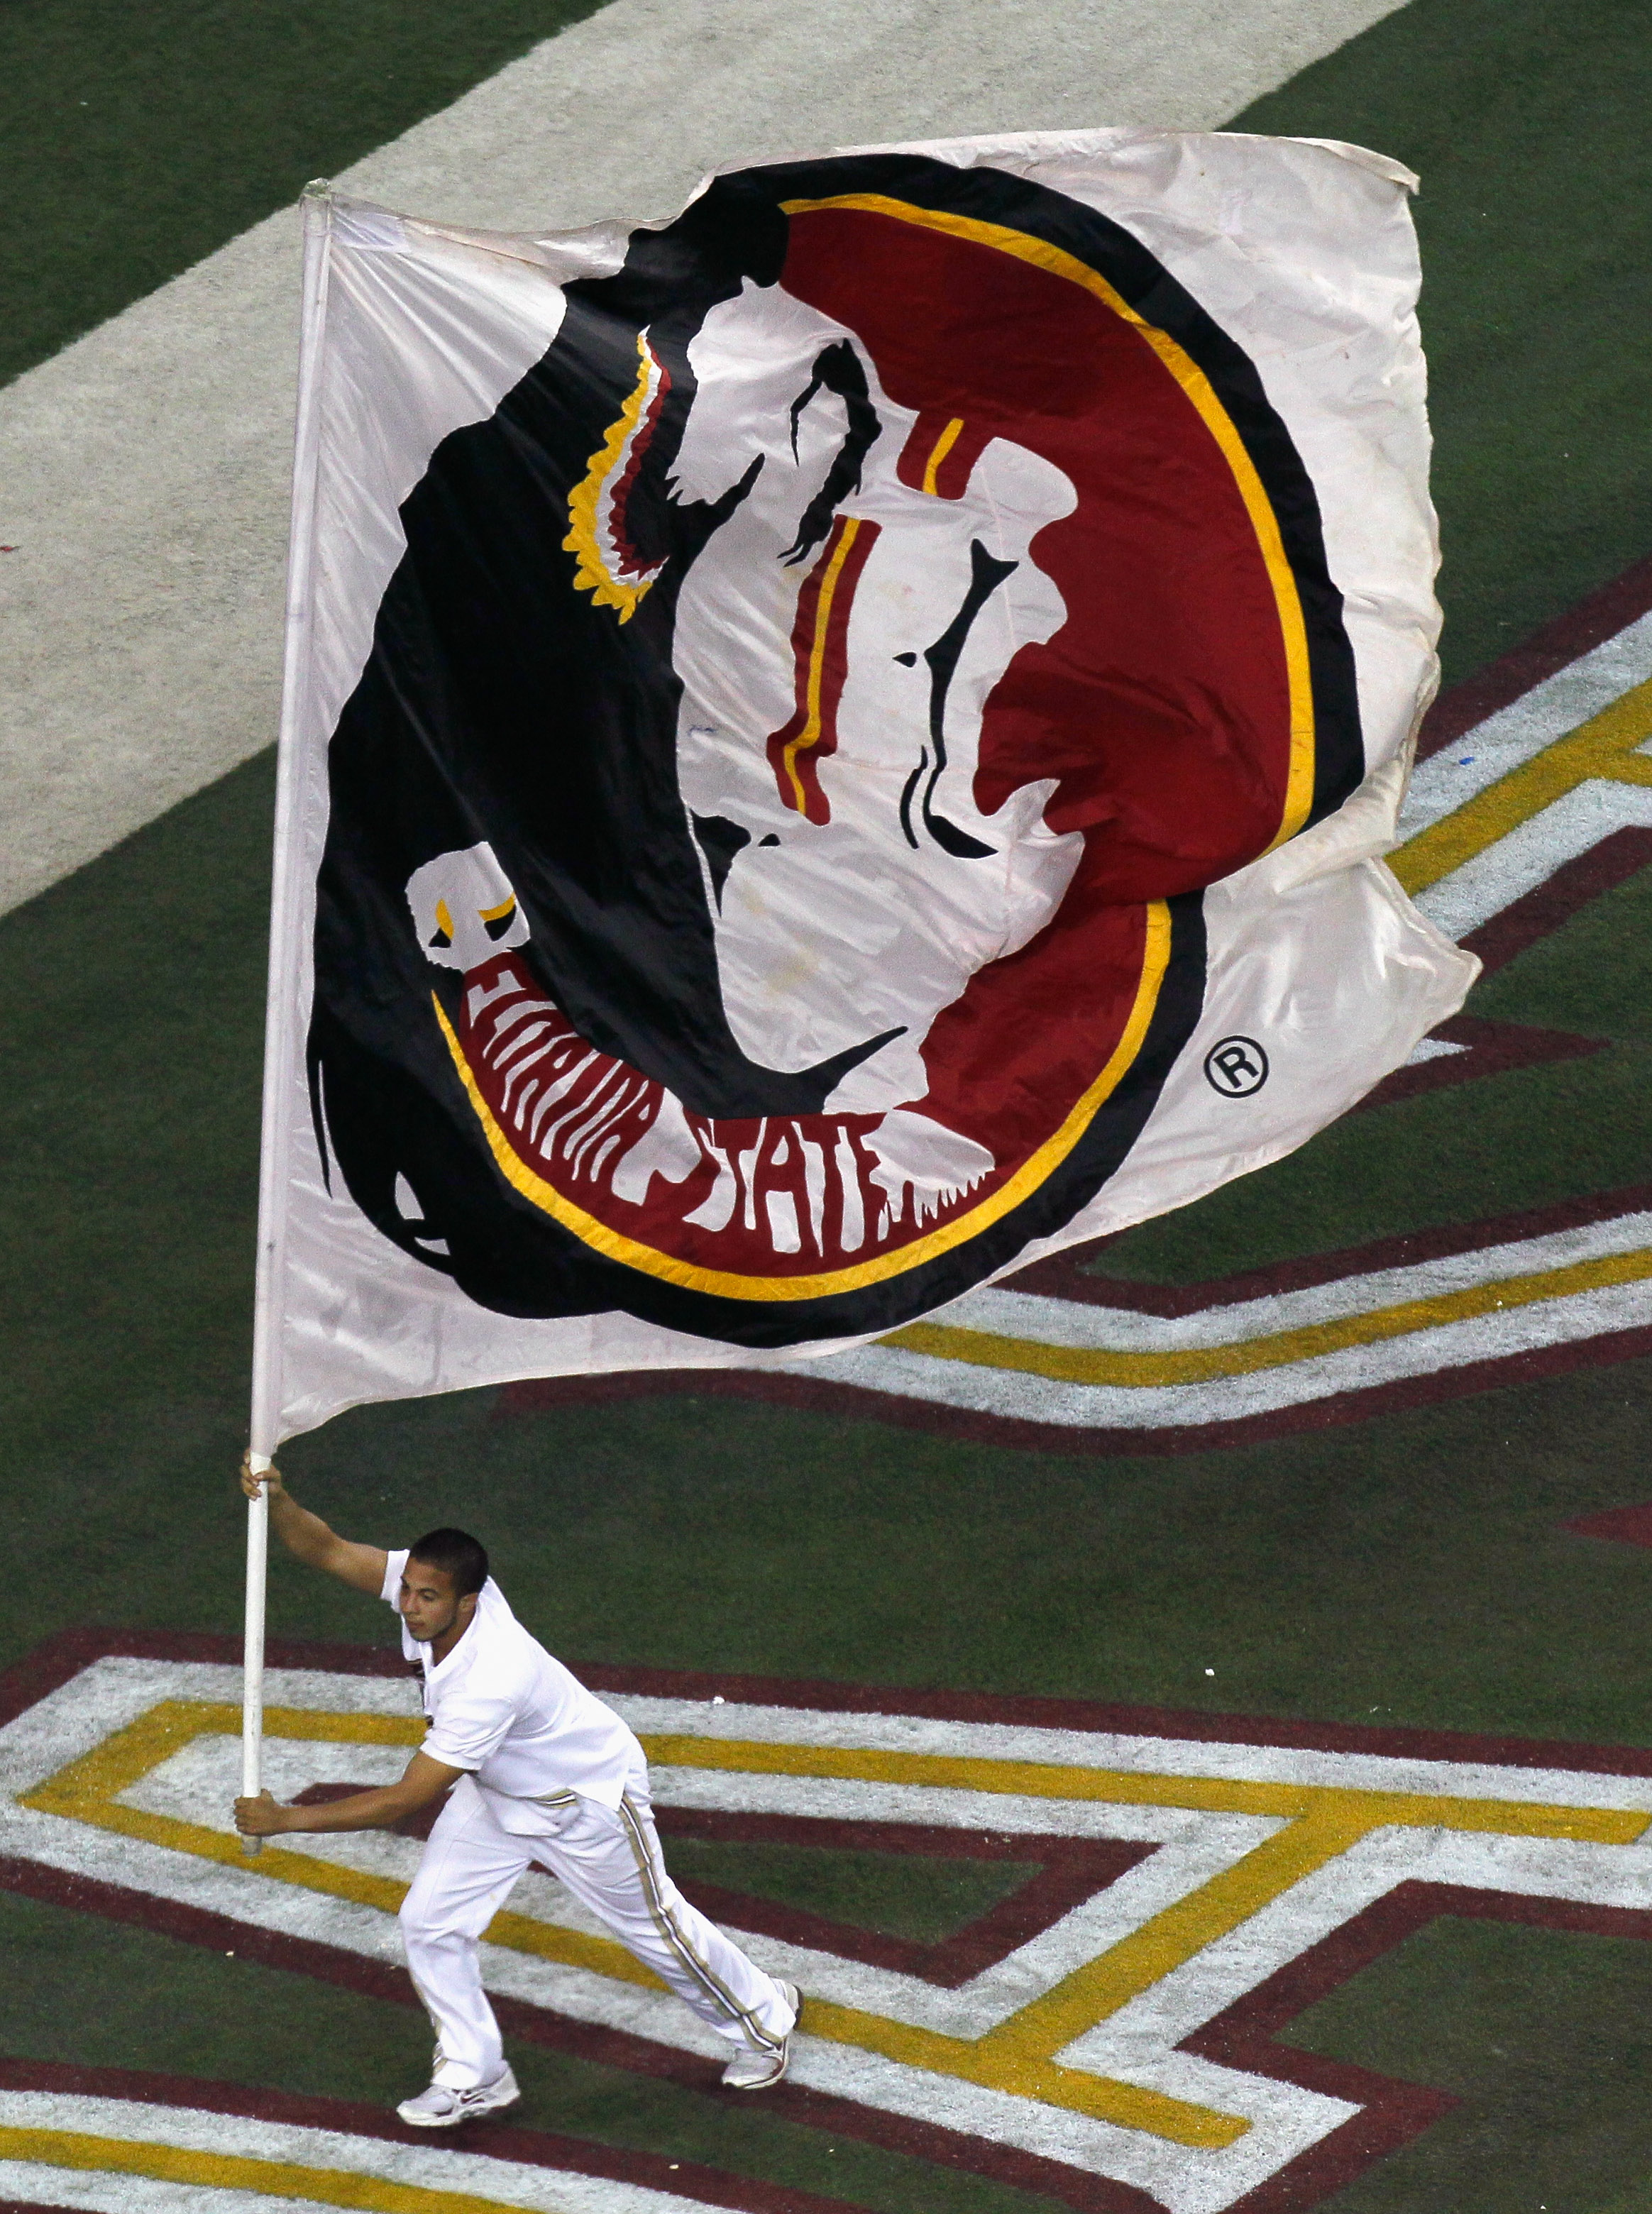 ATLANTA, GA - DECEMBER 31:  A cheerleader for the Florida State Seminoles against the South Carolina Gamecocks during the 2010 Chick-fil-A Bowl at Georgia Dome on December 31, 2010 in Atlanta, Georgia.  (Photo by Kevin C. Cox/Getty Images)